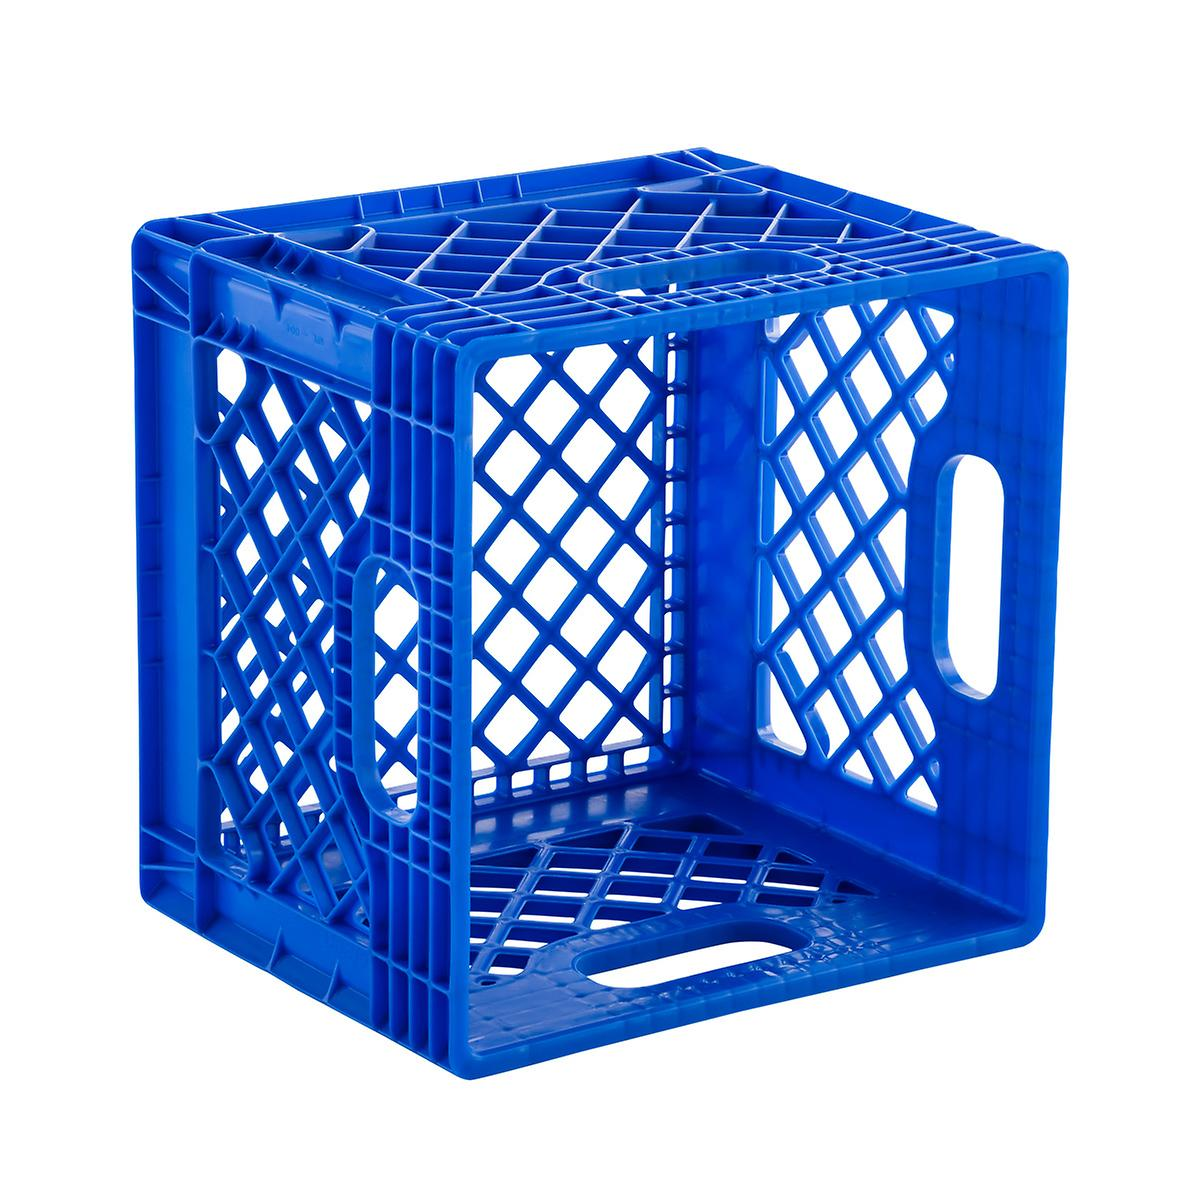 Image result for blue crate